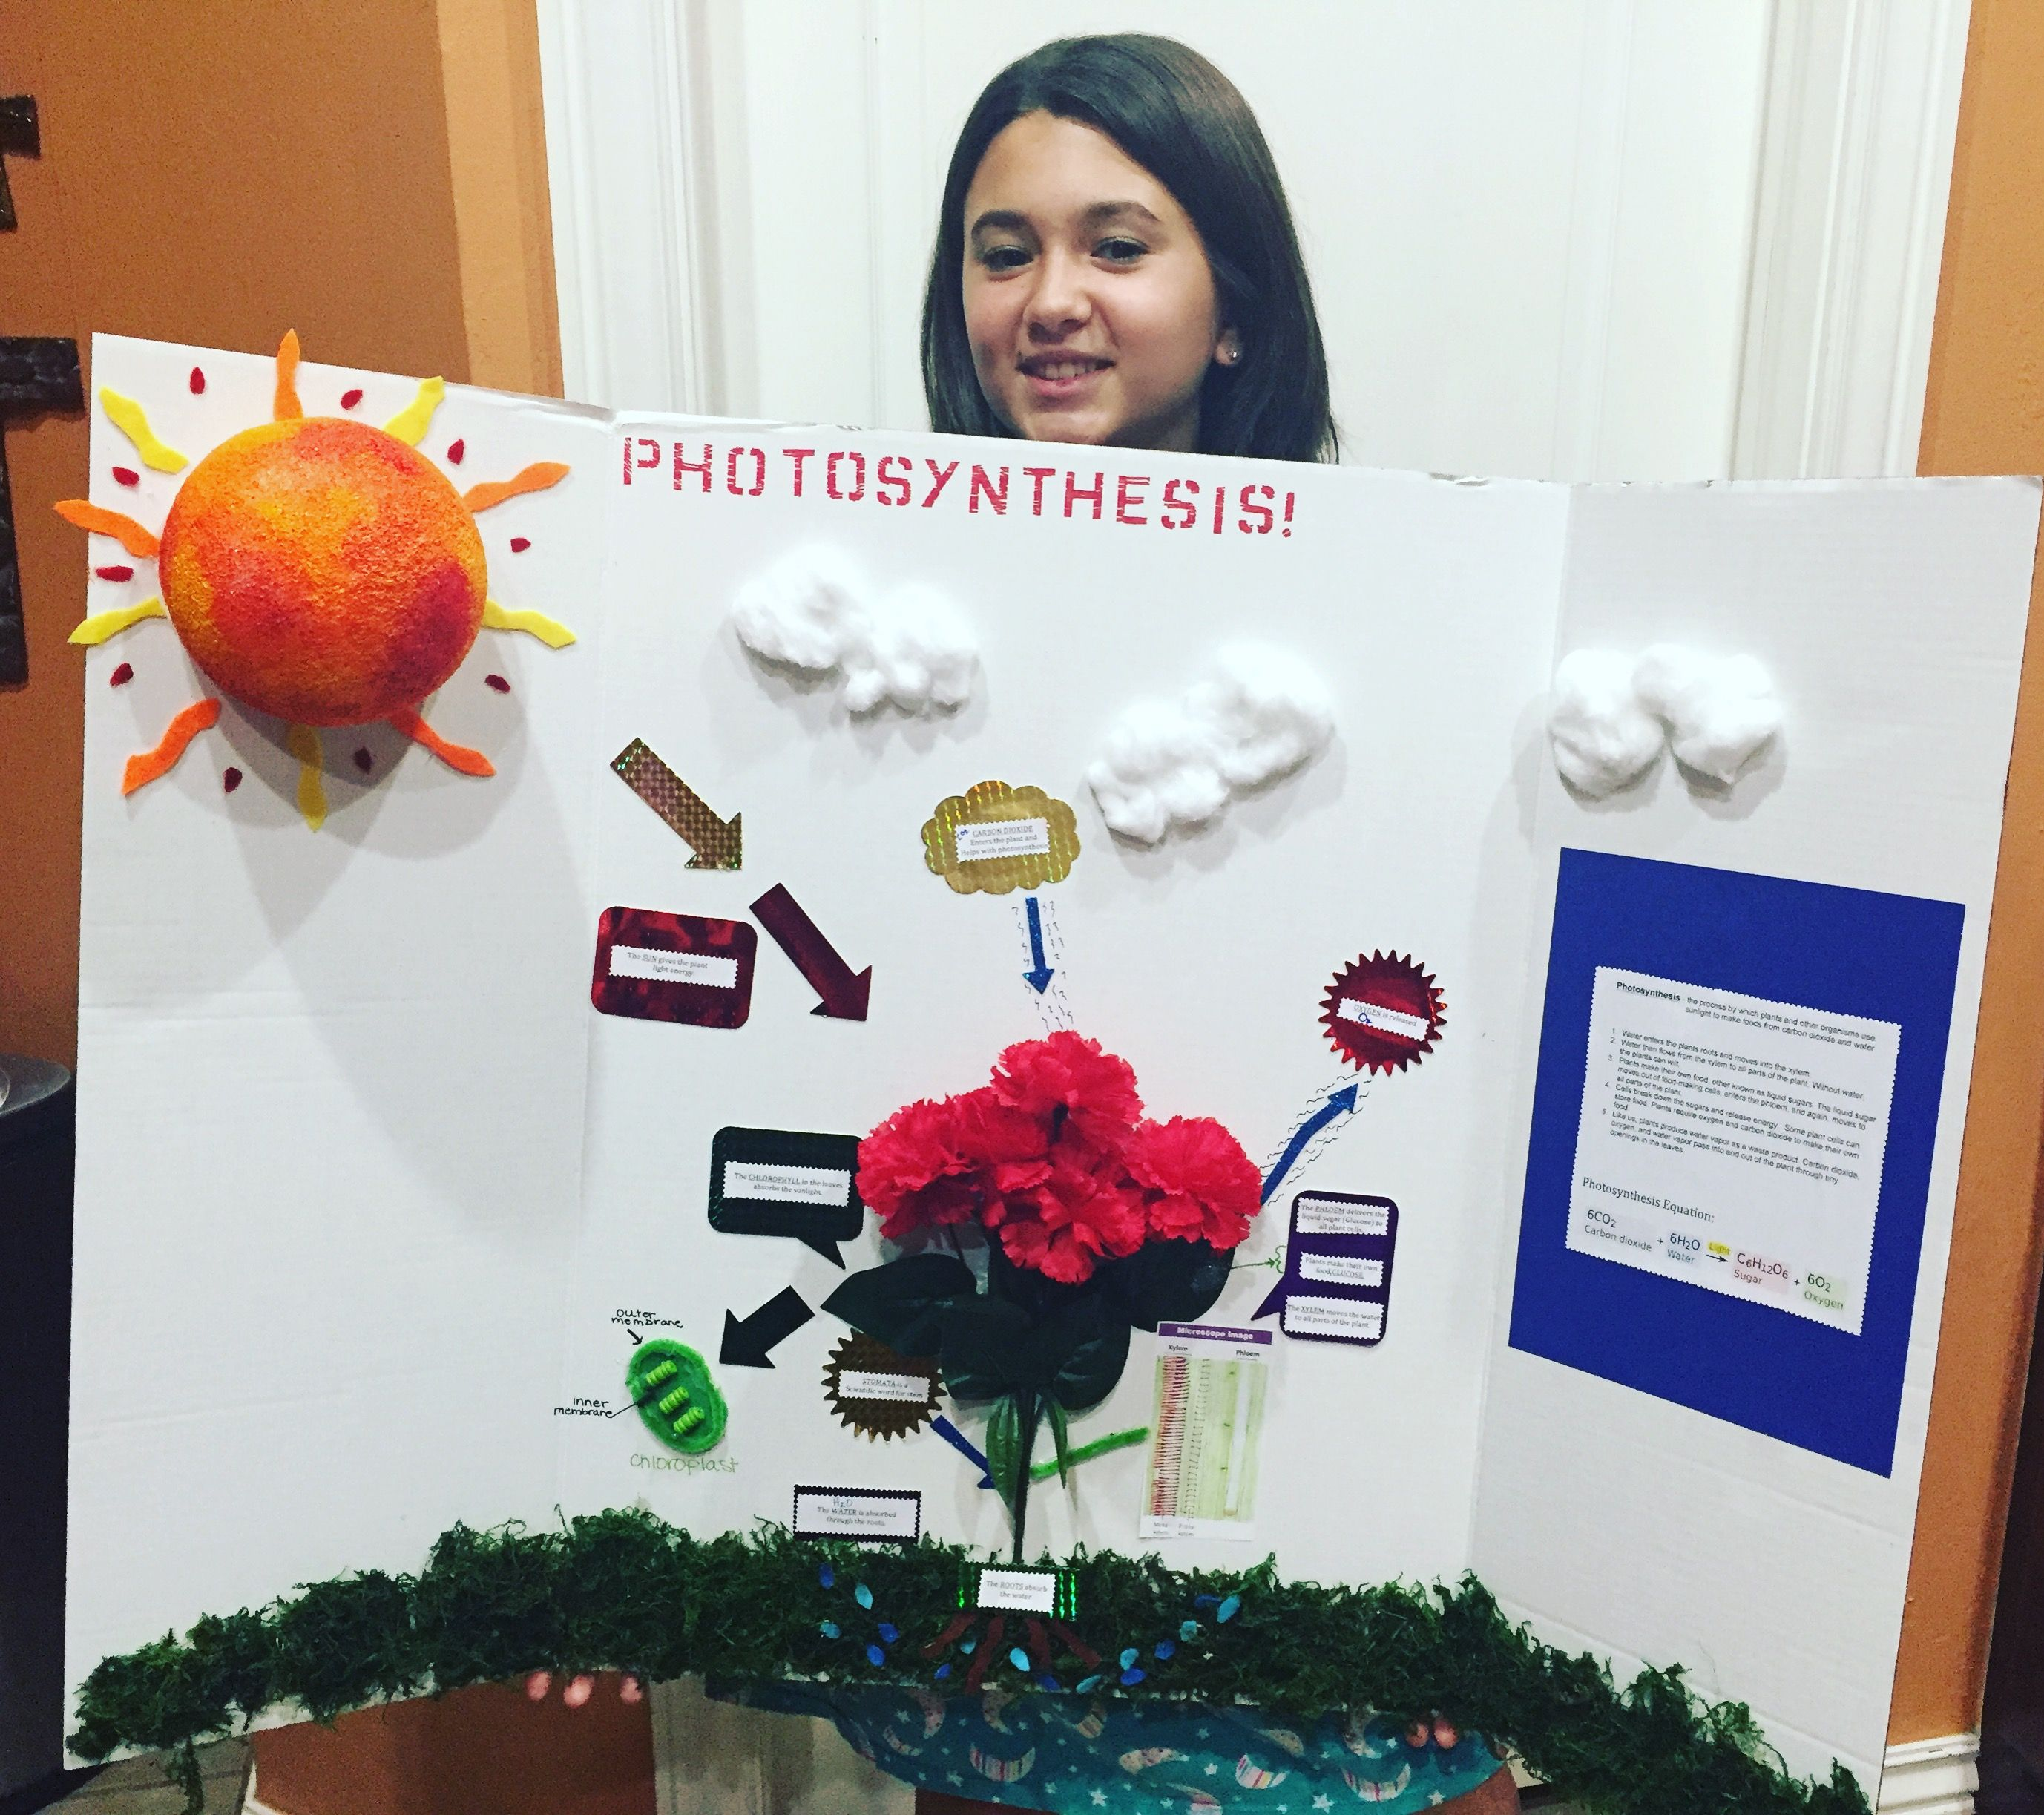 Detailed Video Show How To Make Photosynthesis Model Project for school